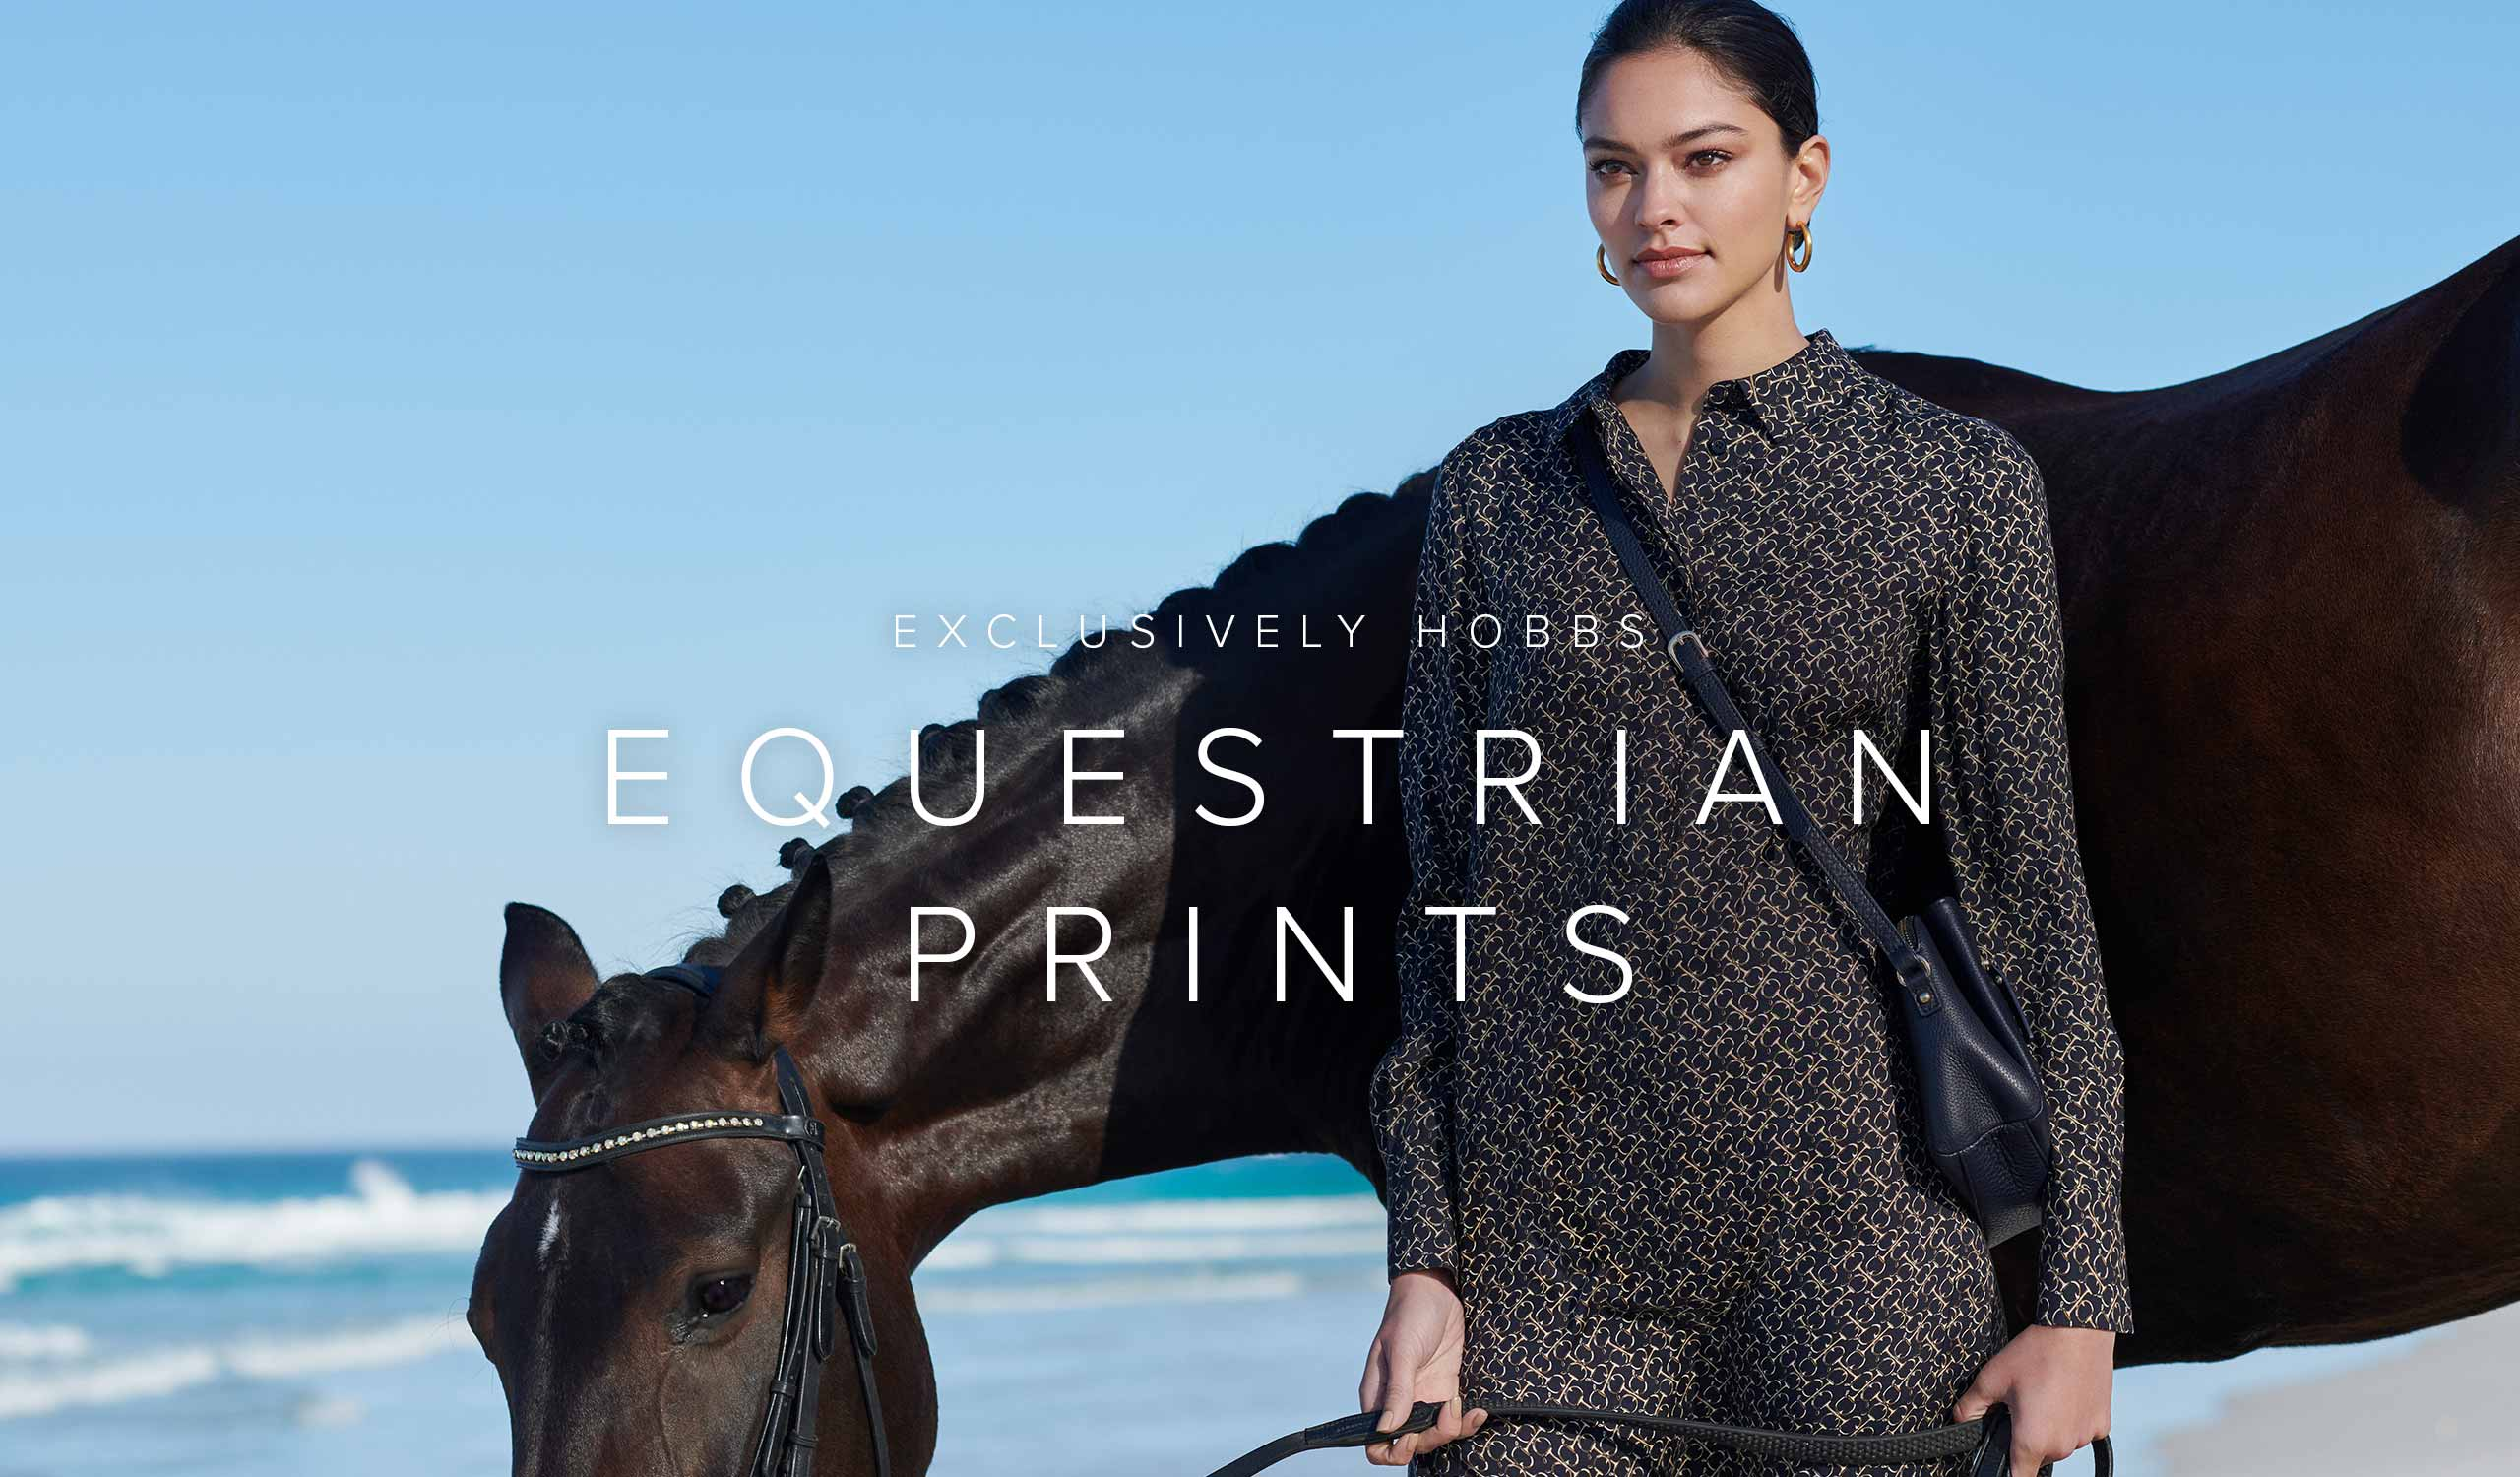 Woman poses in an  equestrian print, green and navy blue shirt dress with a black horse on a beach.